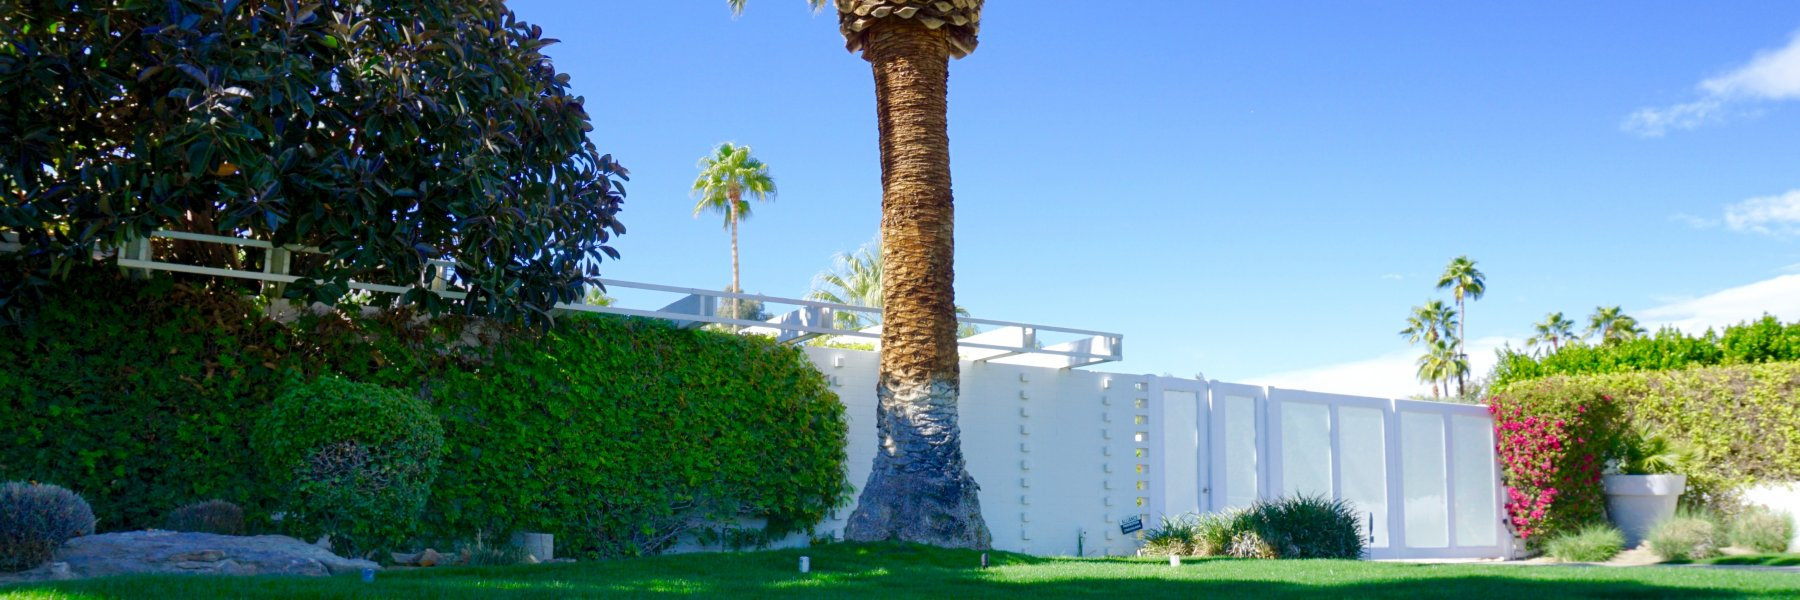 Movie Colony is a community of homes in Palm Springs California